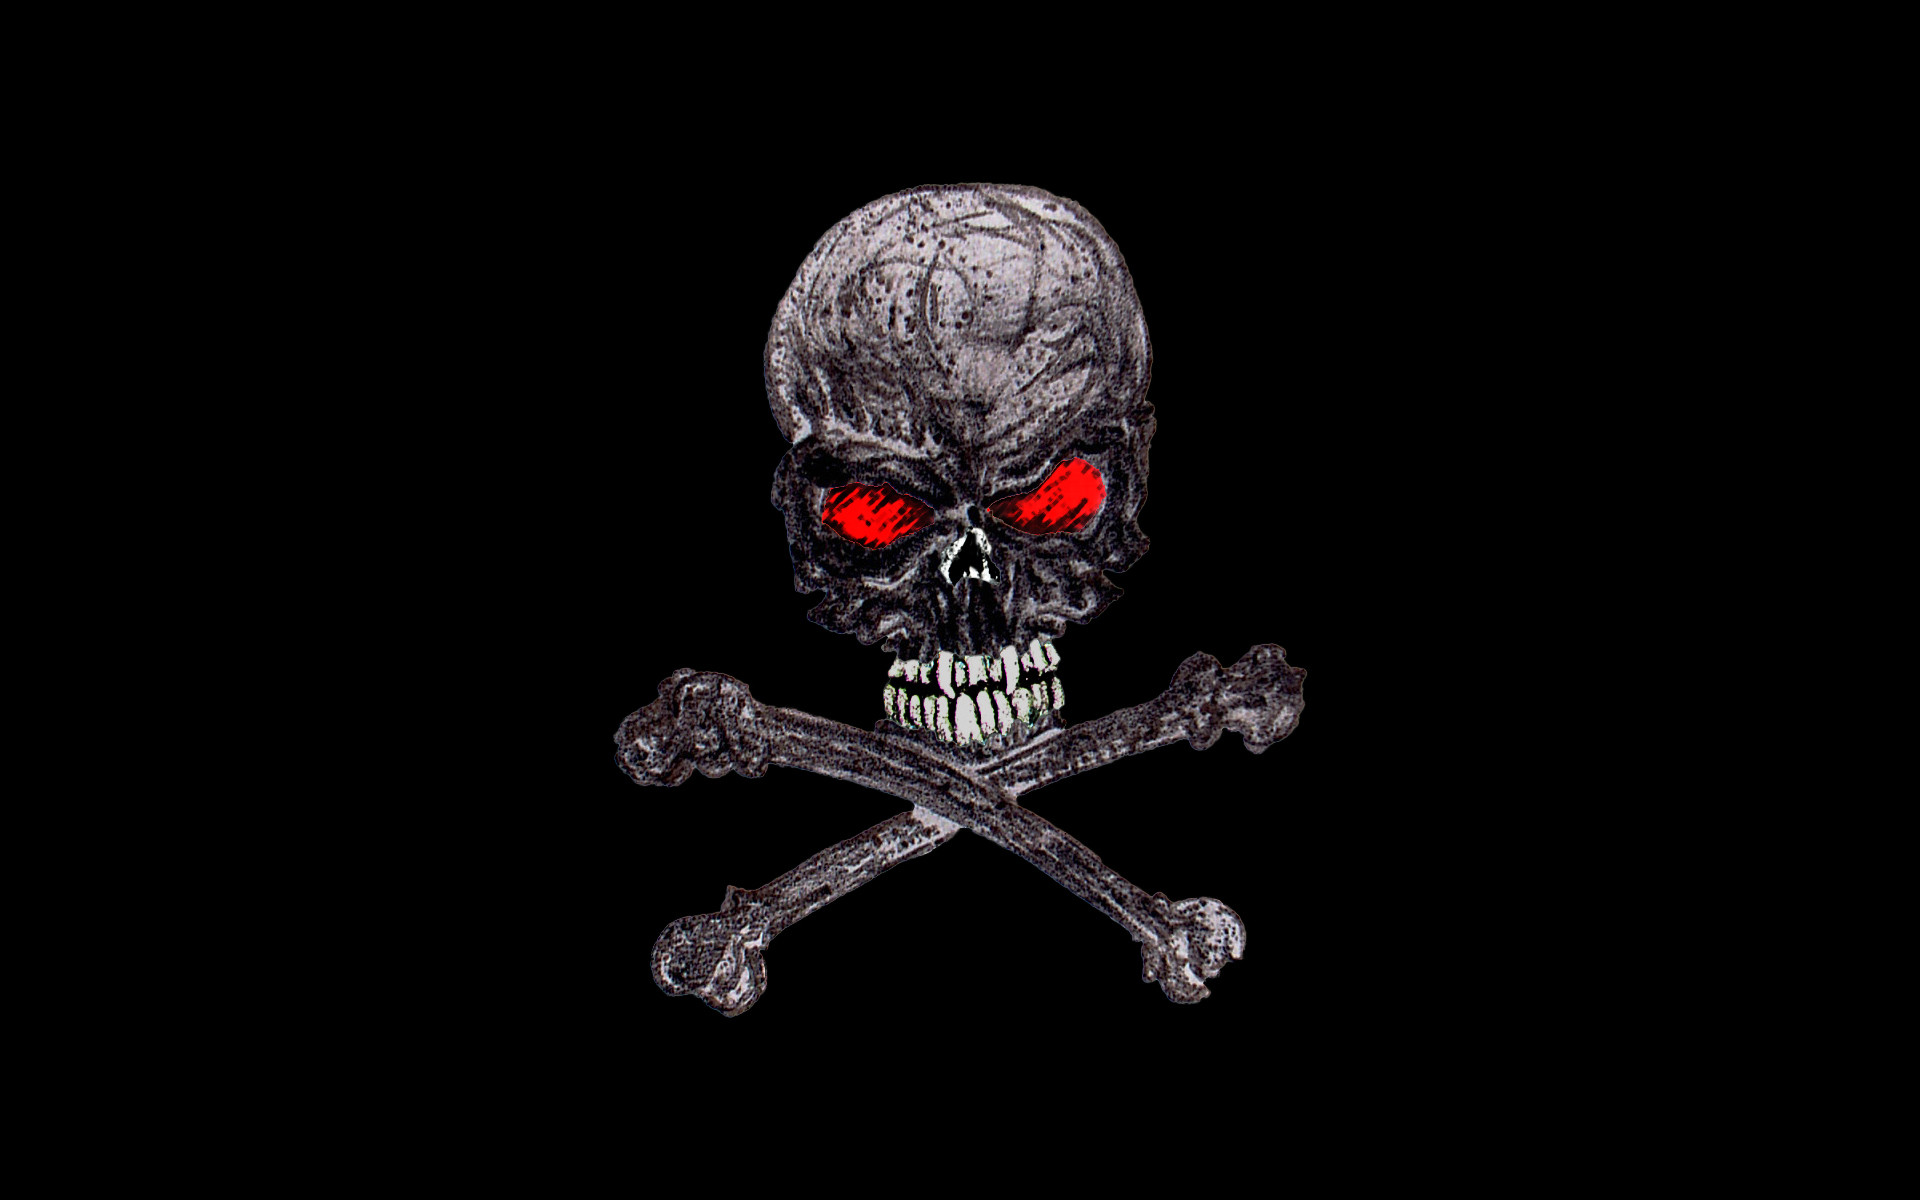 1920x1080 Page 4: Full HD 1080p Skull Wallpapers HD, Desktop Backgrounds